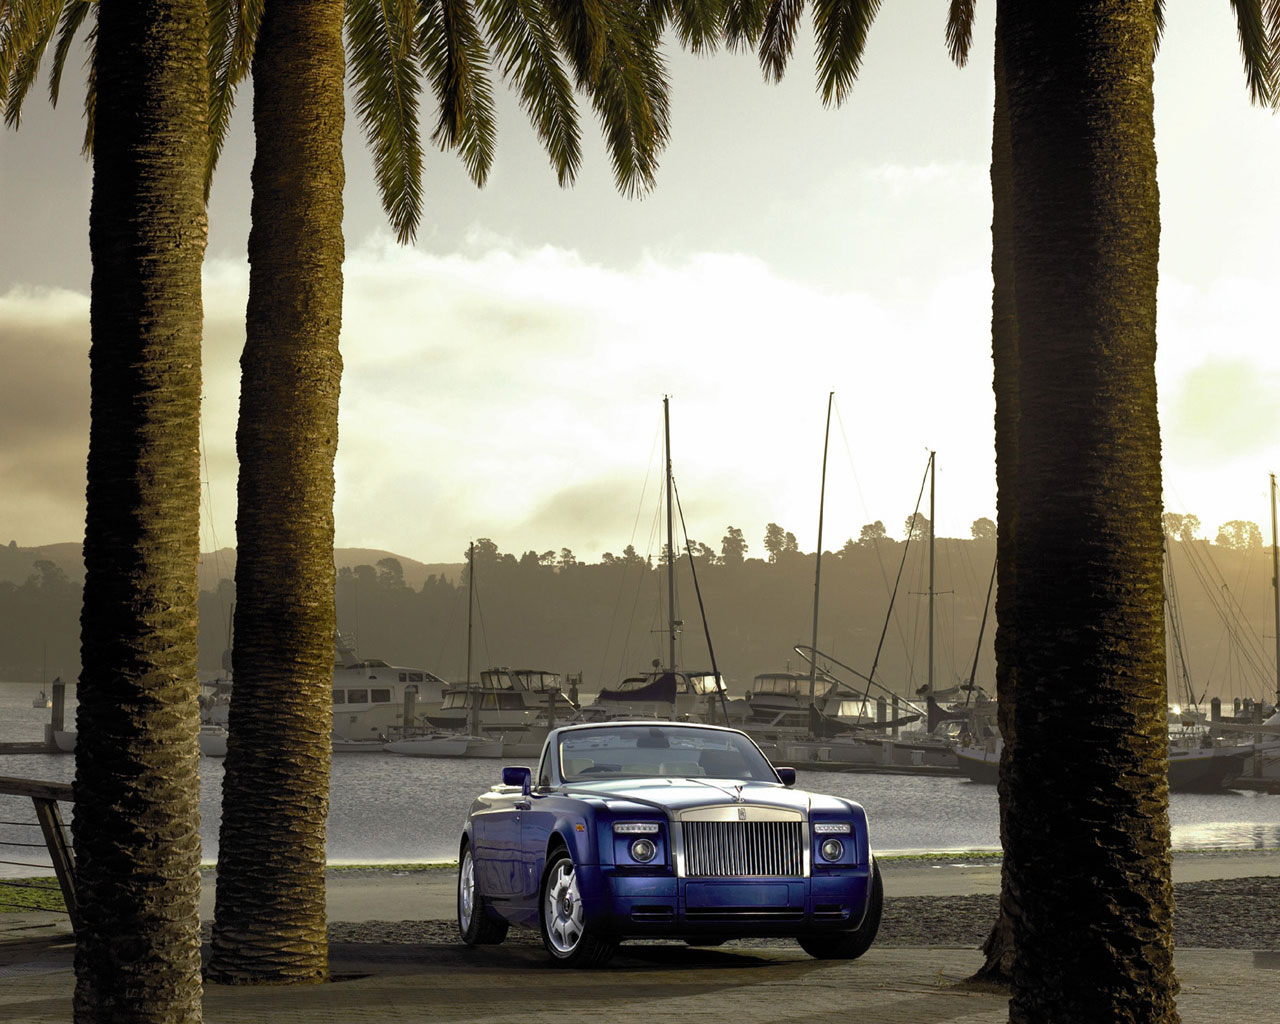 Обои на рабочий стол Rolls Royce Phantom Drophead Coupe 2008 front5 1280x1024